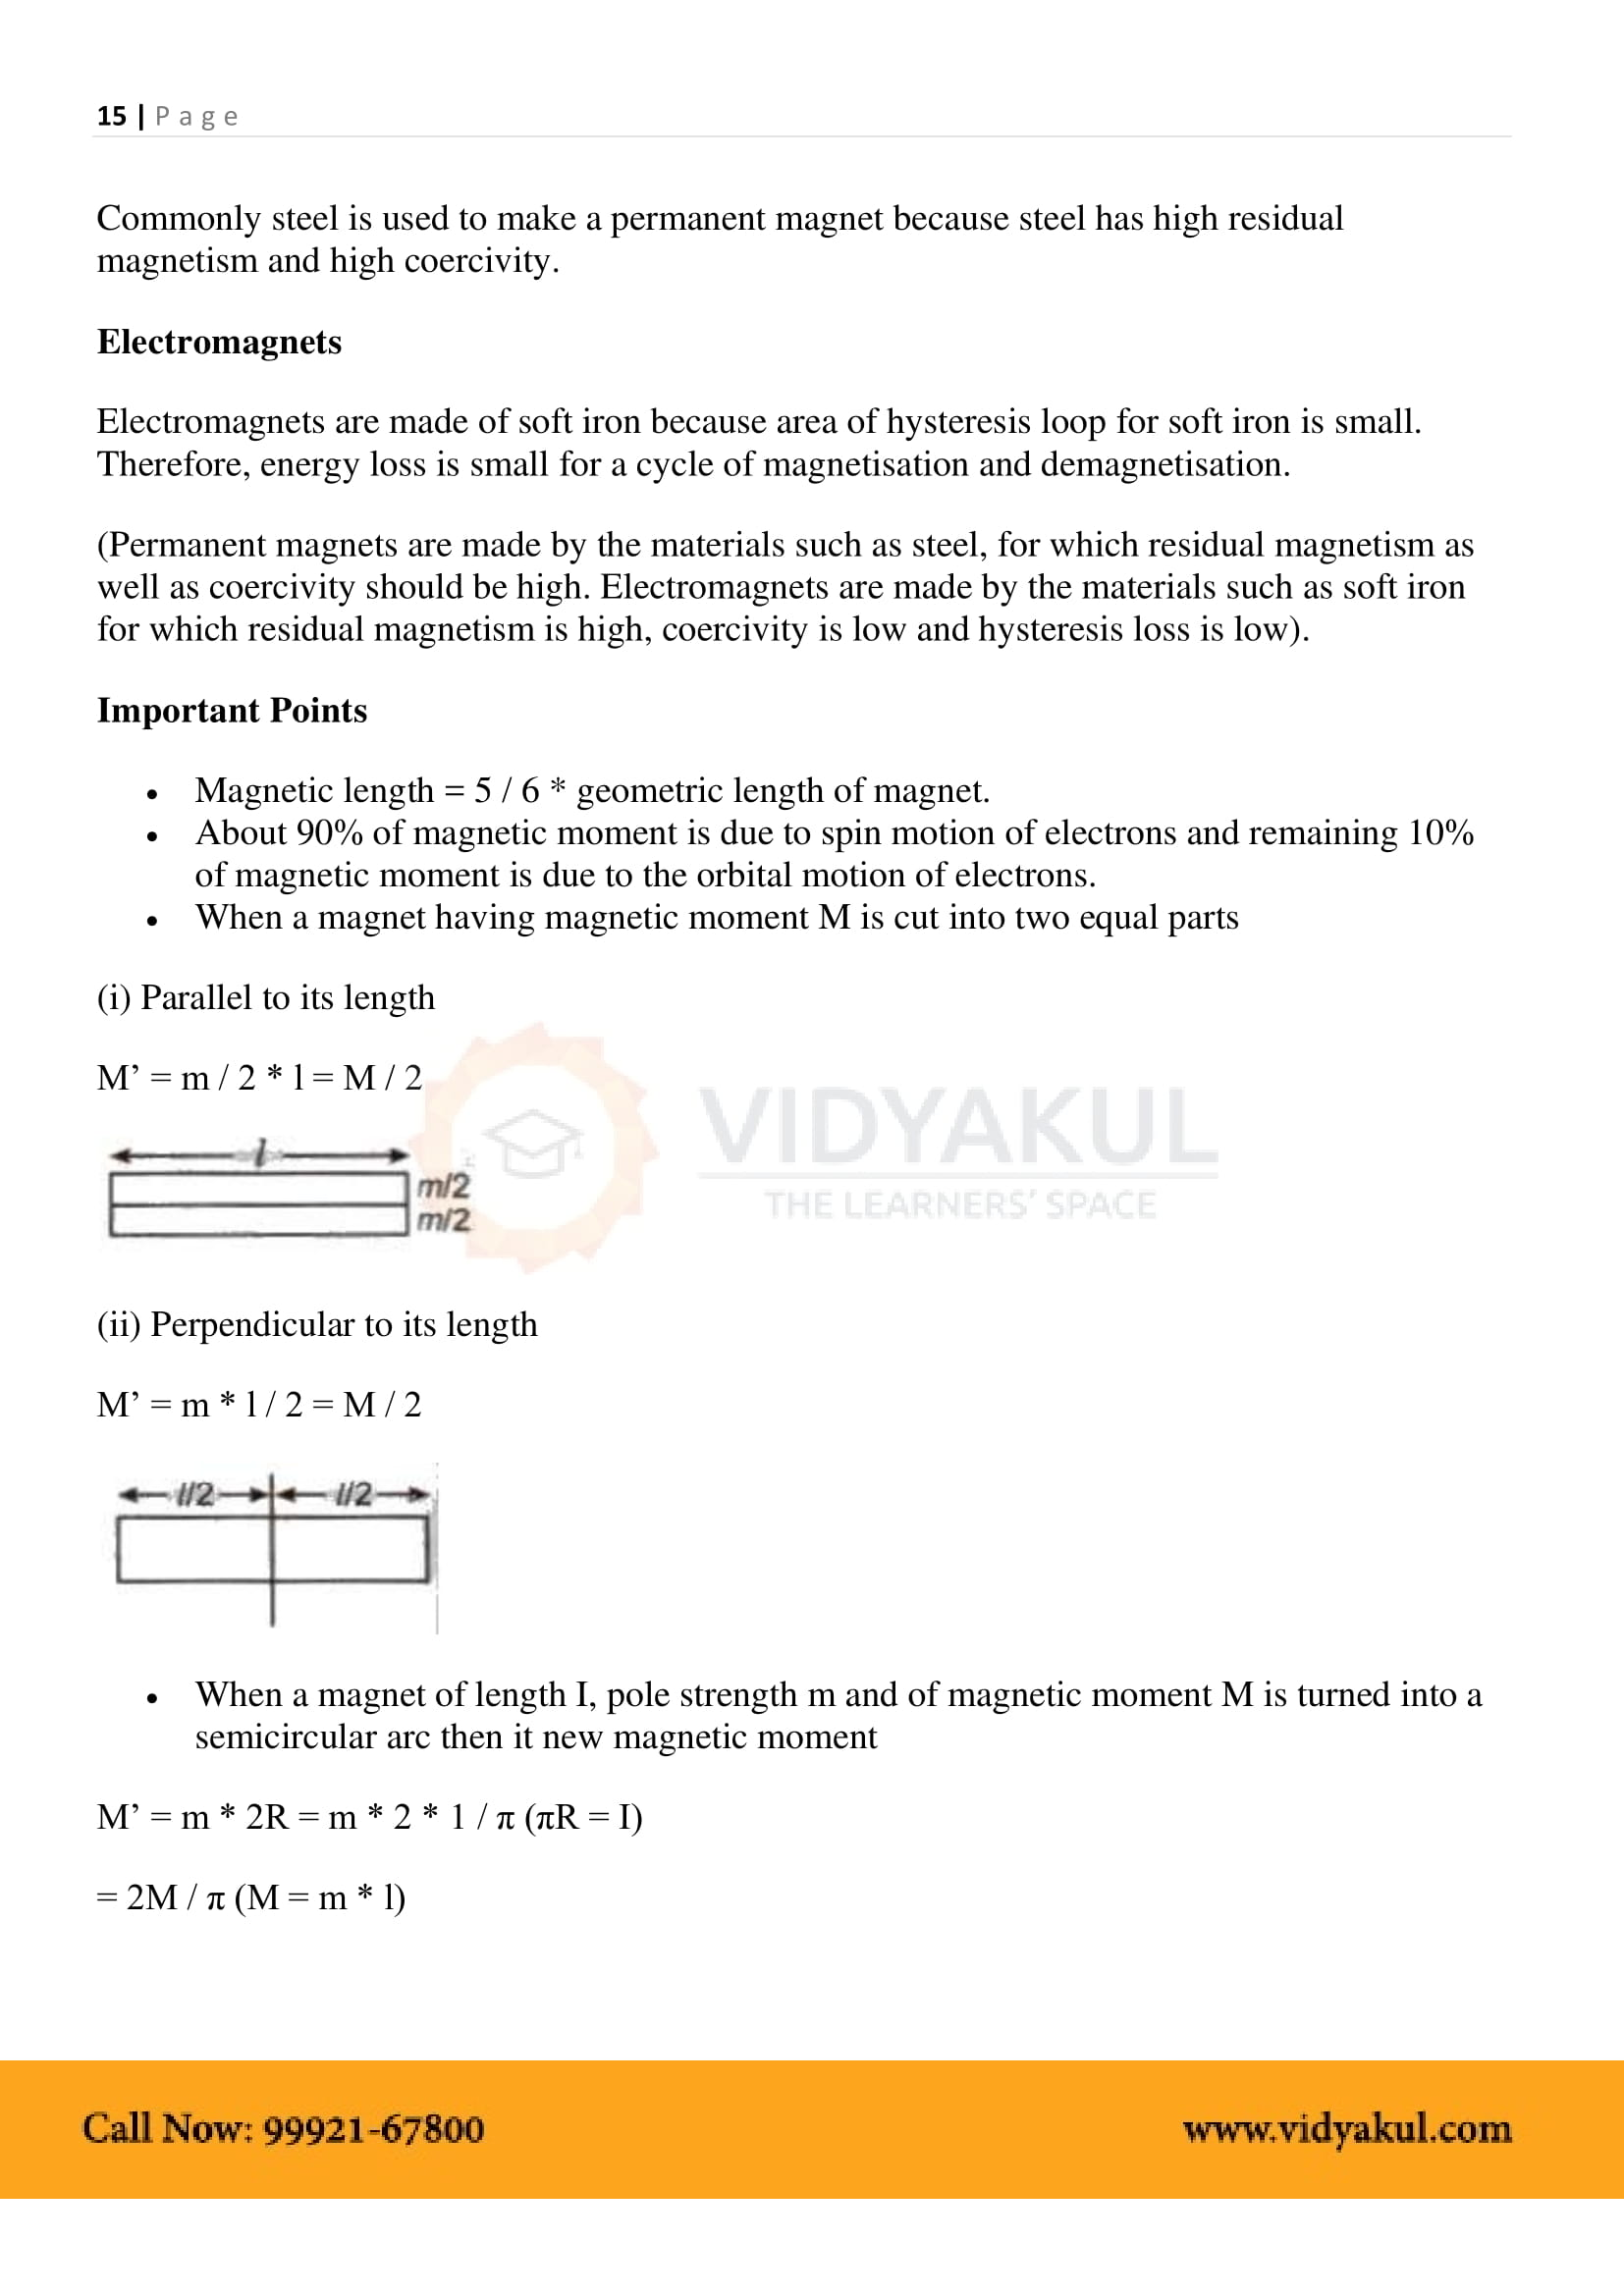 Magnetism and Matter Class 12 Notes | Vidyakul